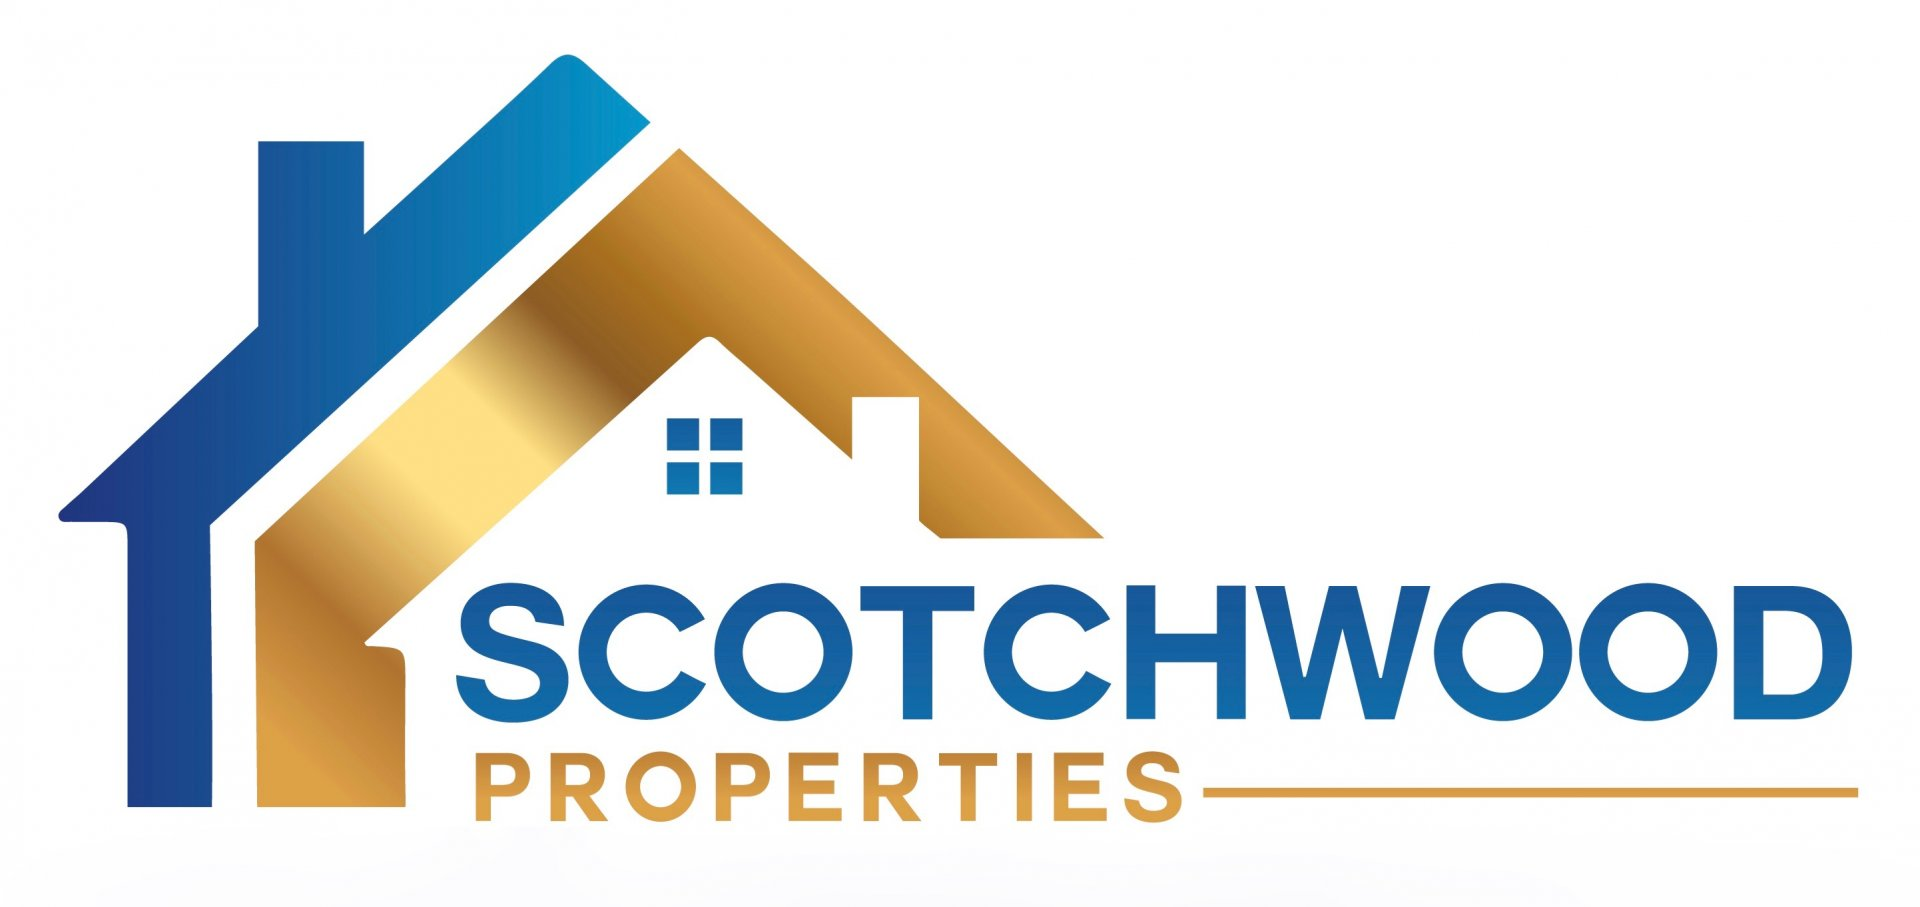 Scotchwood Properties LLC logo